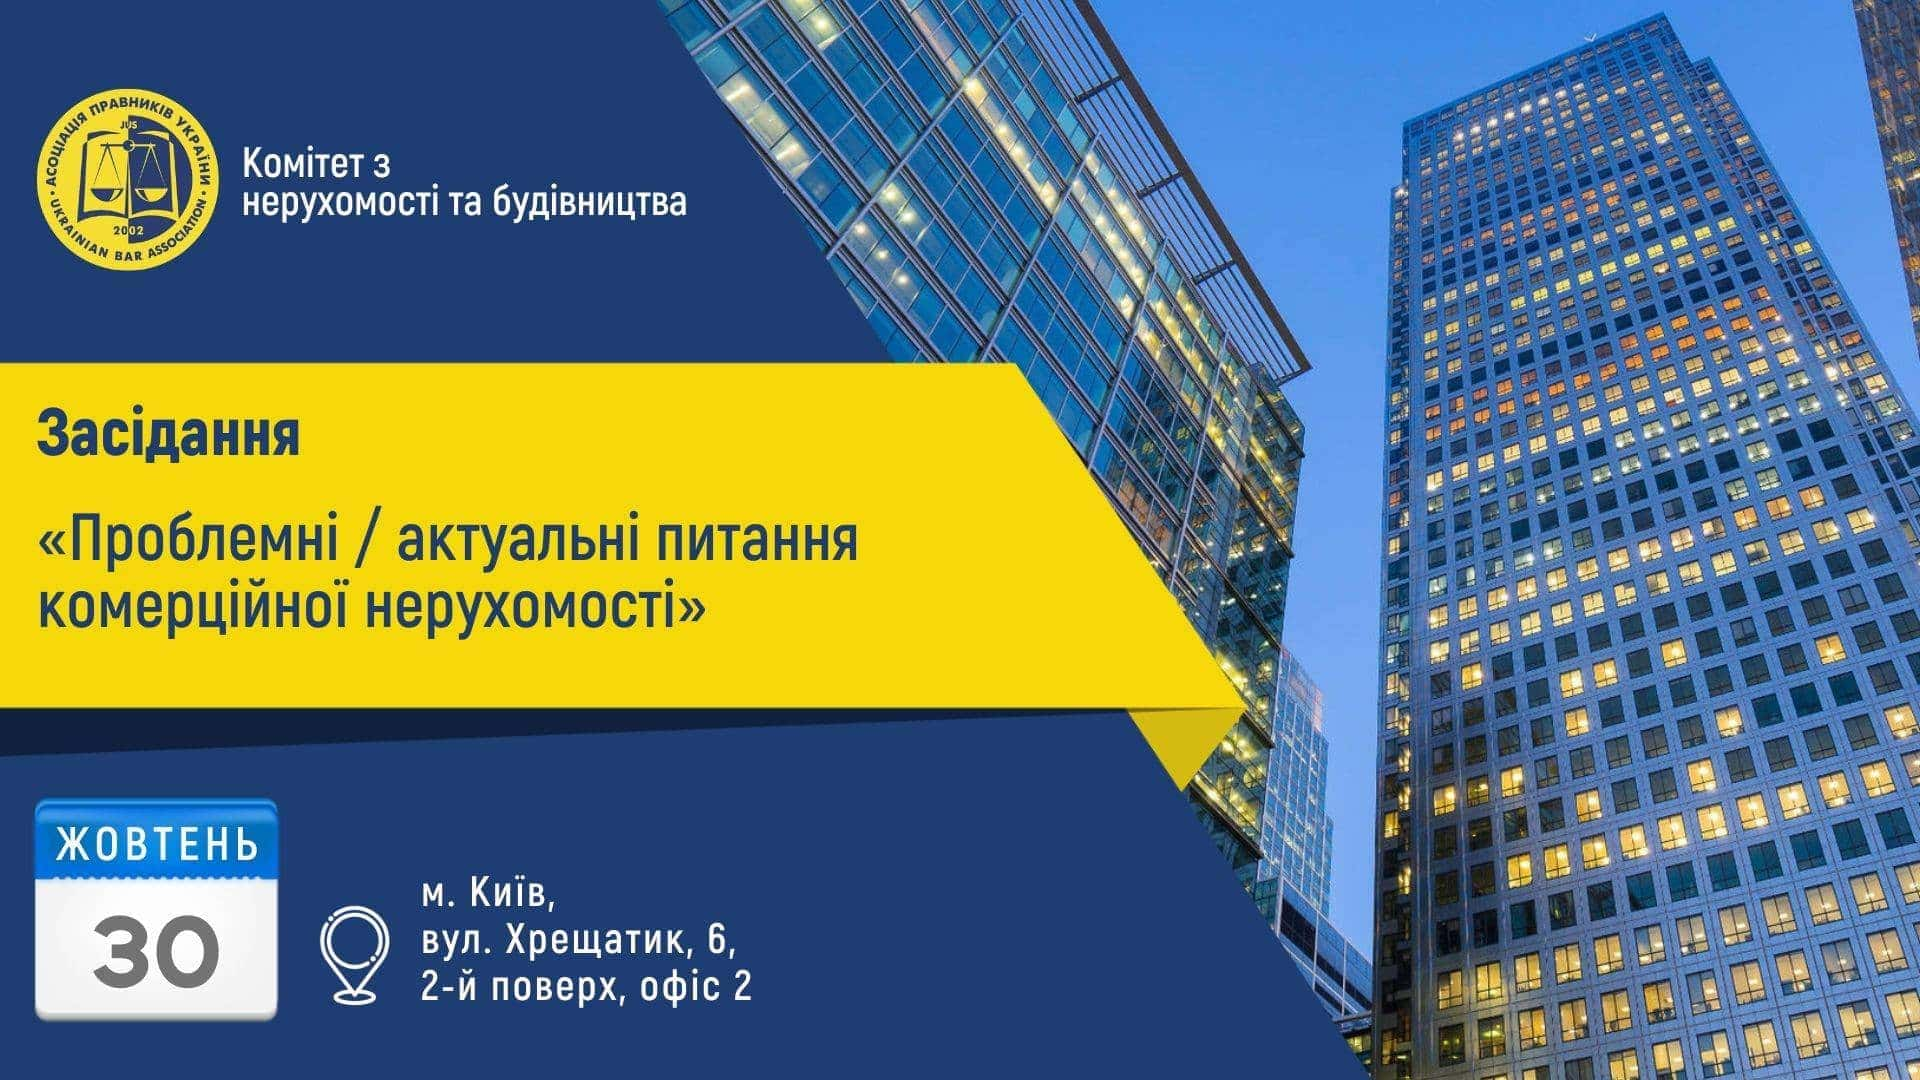 Irina Trunova, Head of Valuation & Advisory NAI Ukraine, will be speaking at the roundtable, organized by Committee on Real Estate & Construction Law of ABU